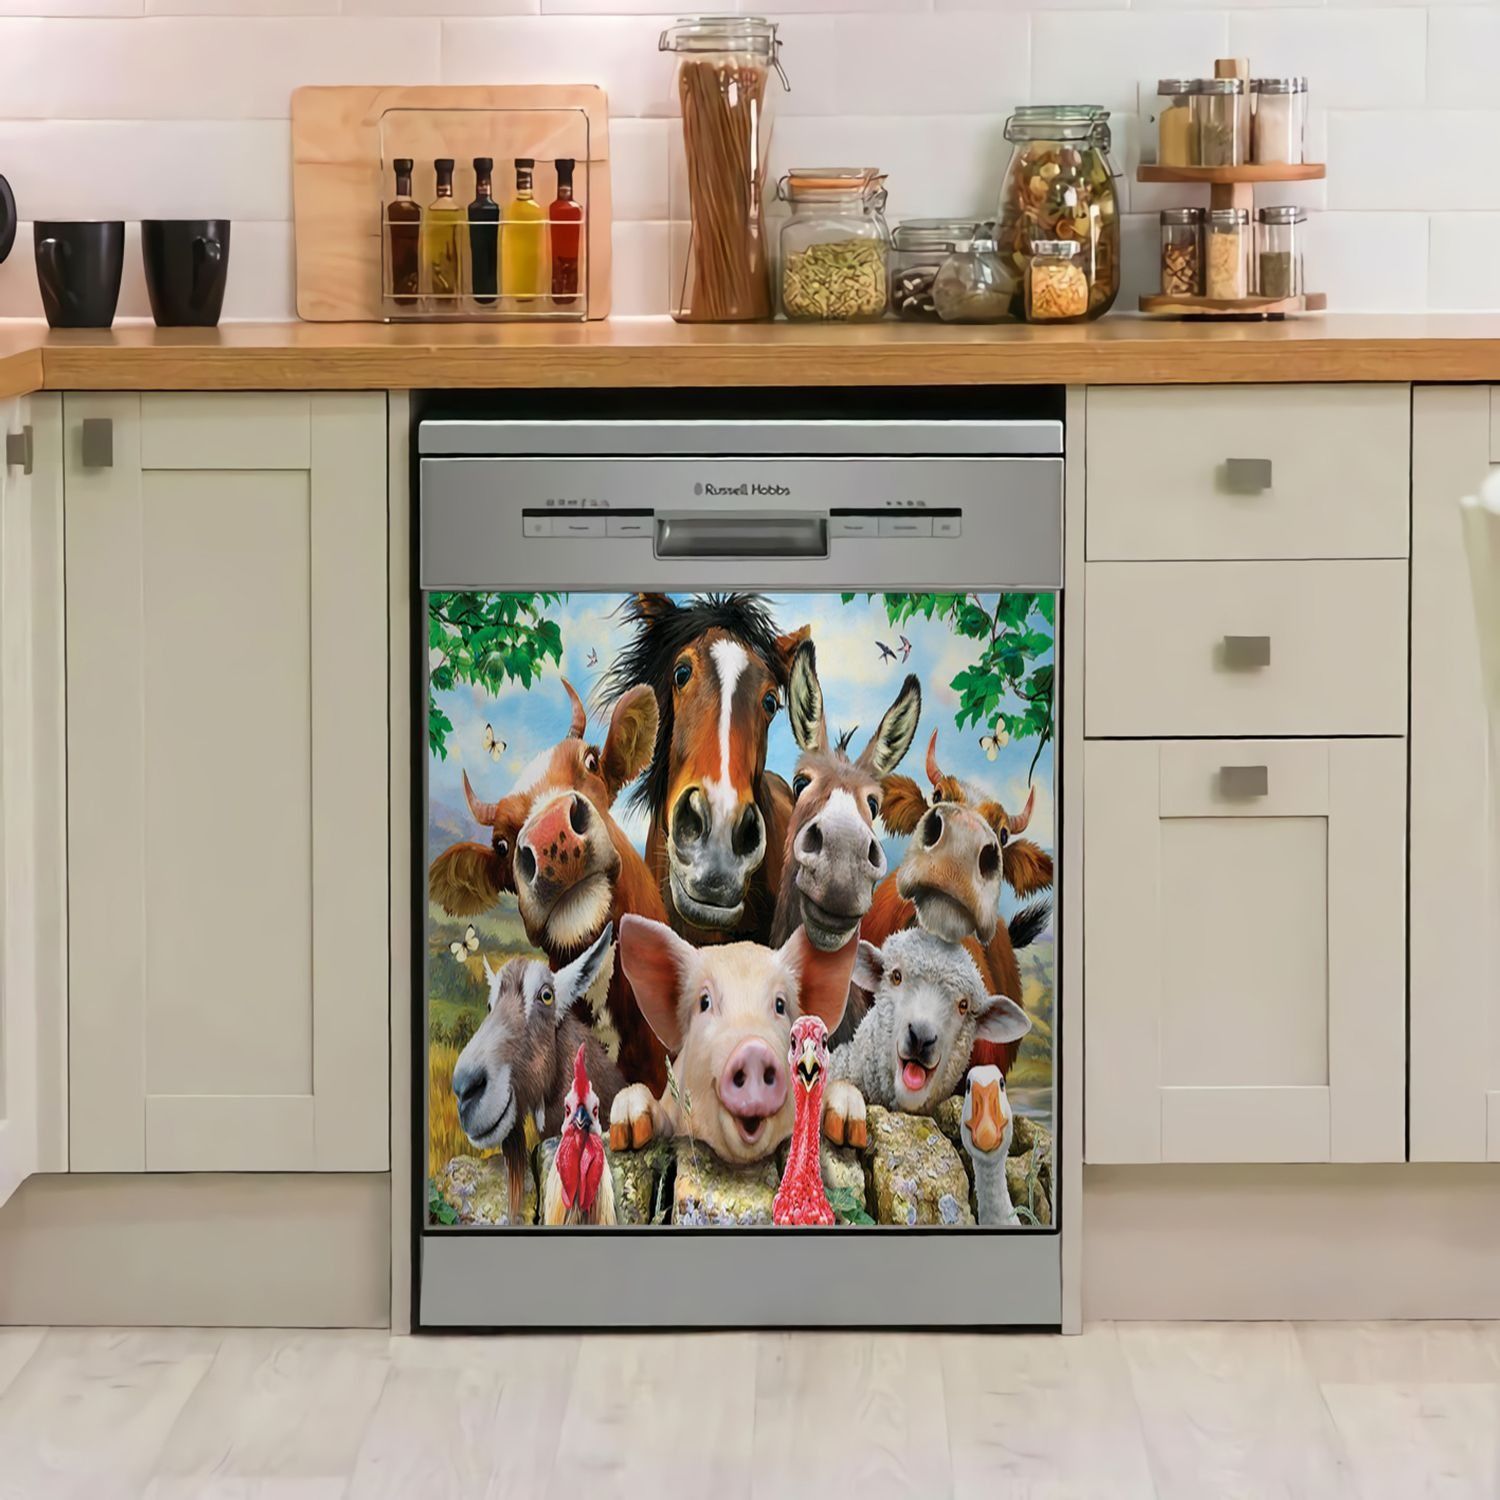 Farm Animals Decor Kitchen Dishwasher Cover 1